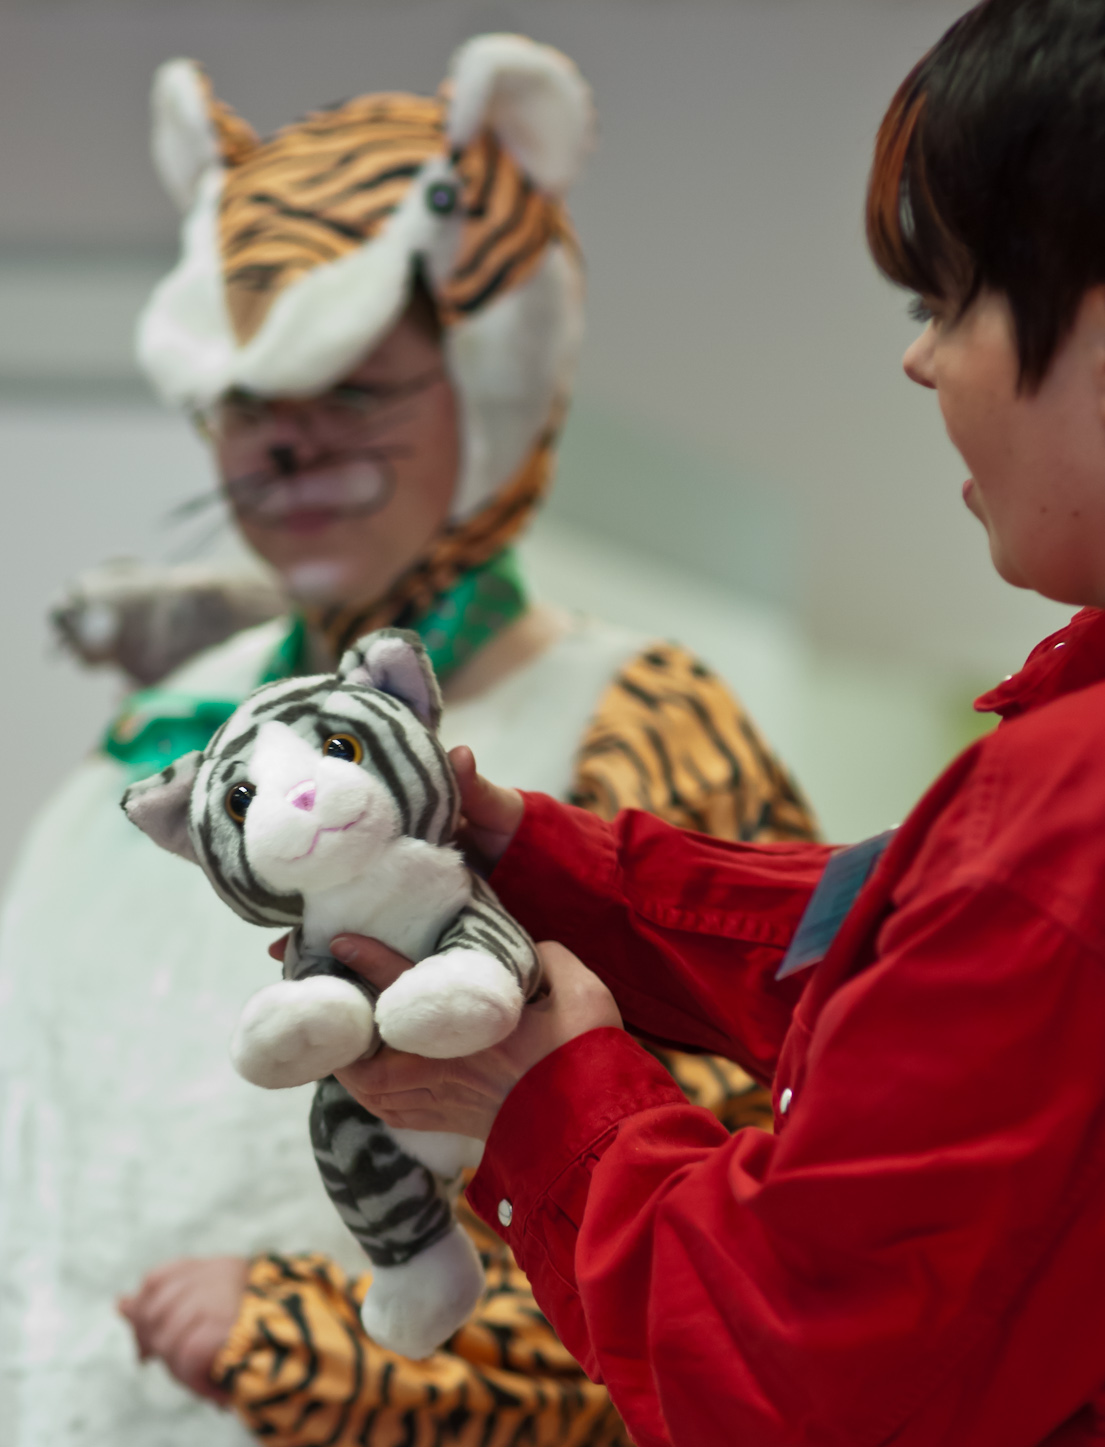 the toy cat contest, photo 191029, 2012-03-17